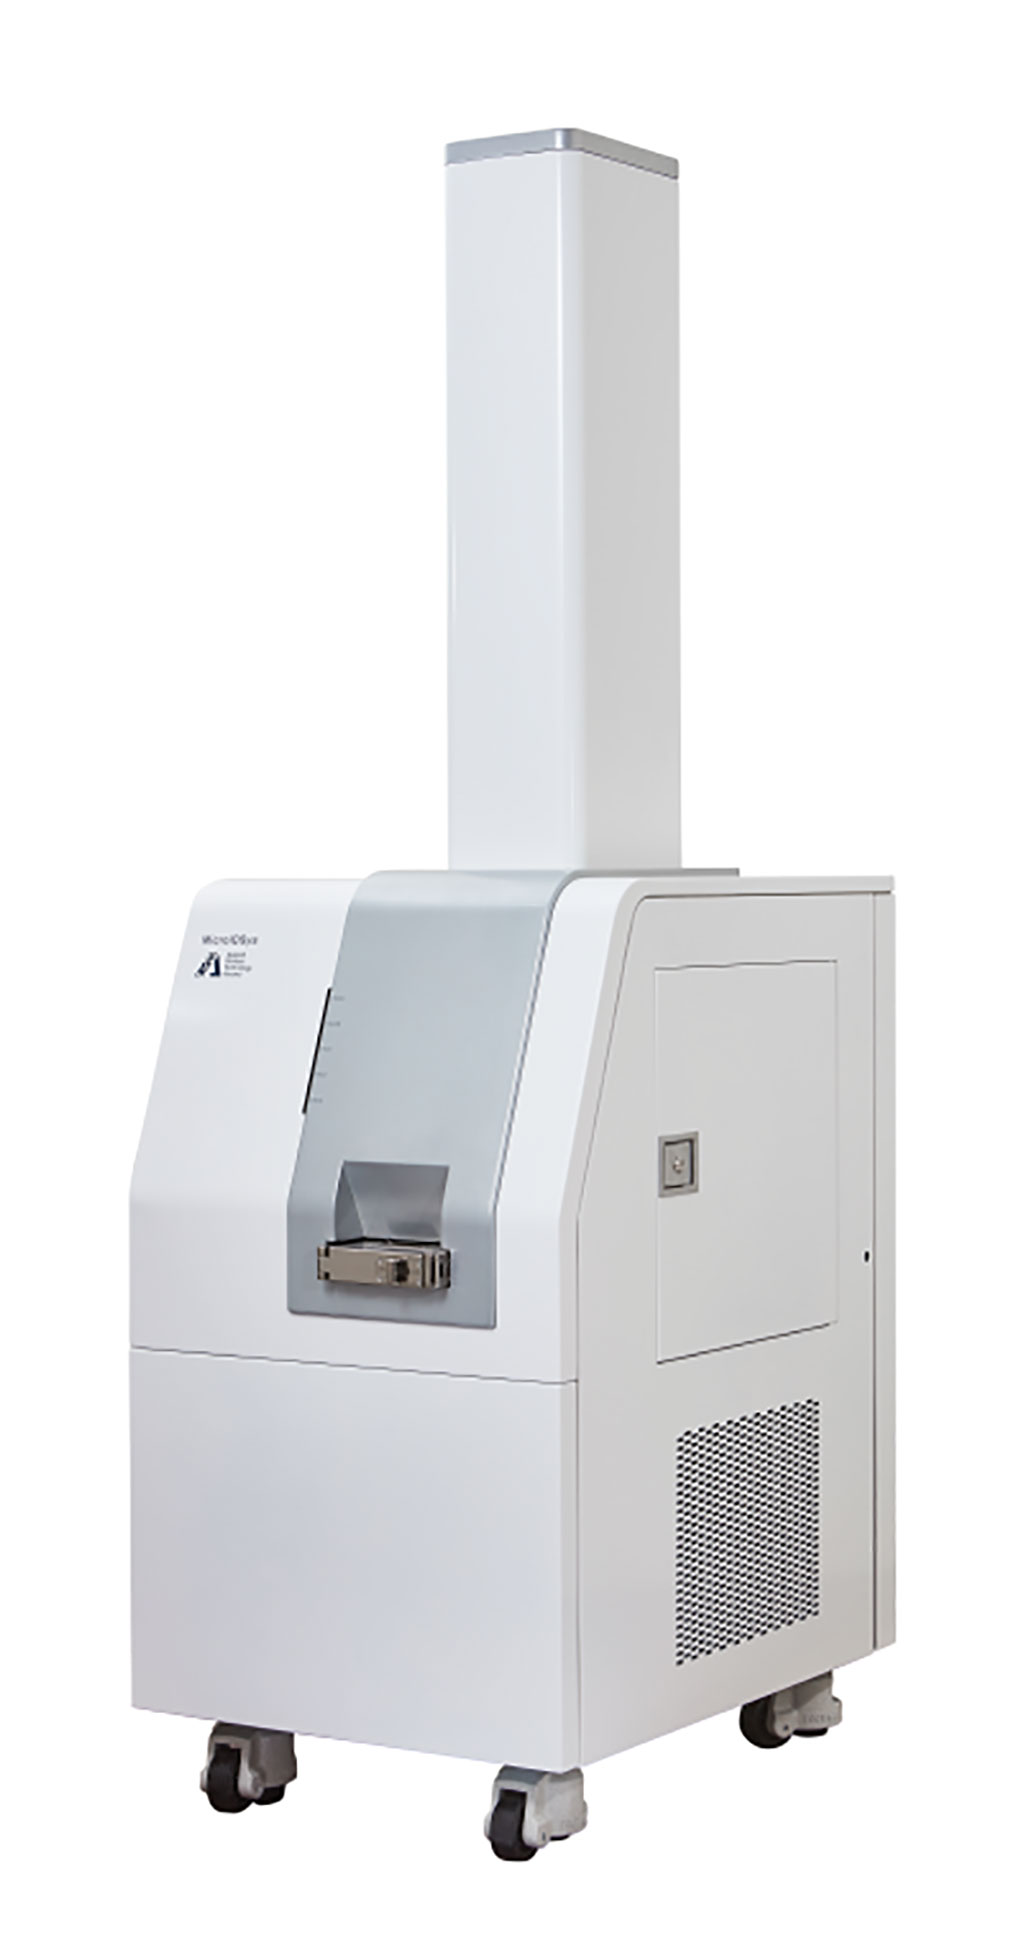 Image: The MicroIDSys Matrix-assisted laser desorption/ionization time-of-flight mass spectrometry (MALDI-TOF MS) system (Photo courtesy of ASTA Corp)